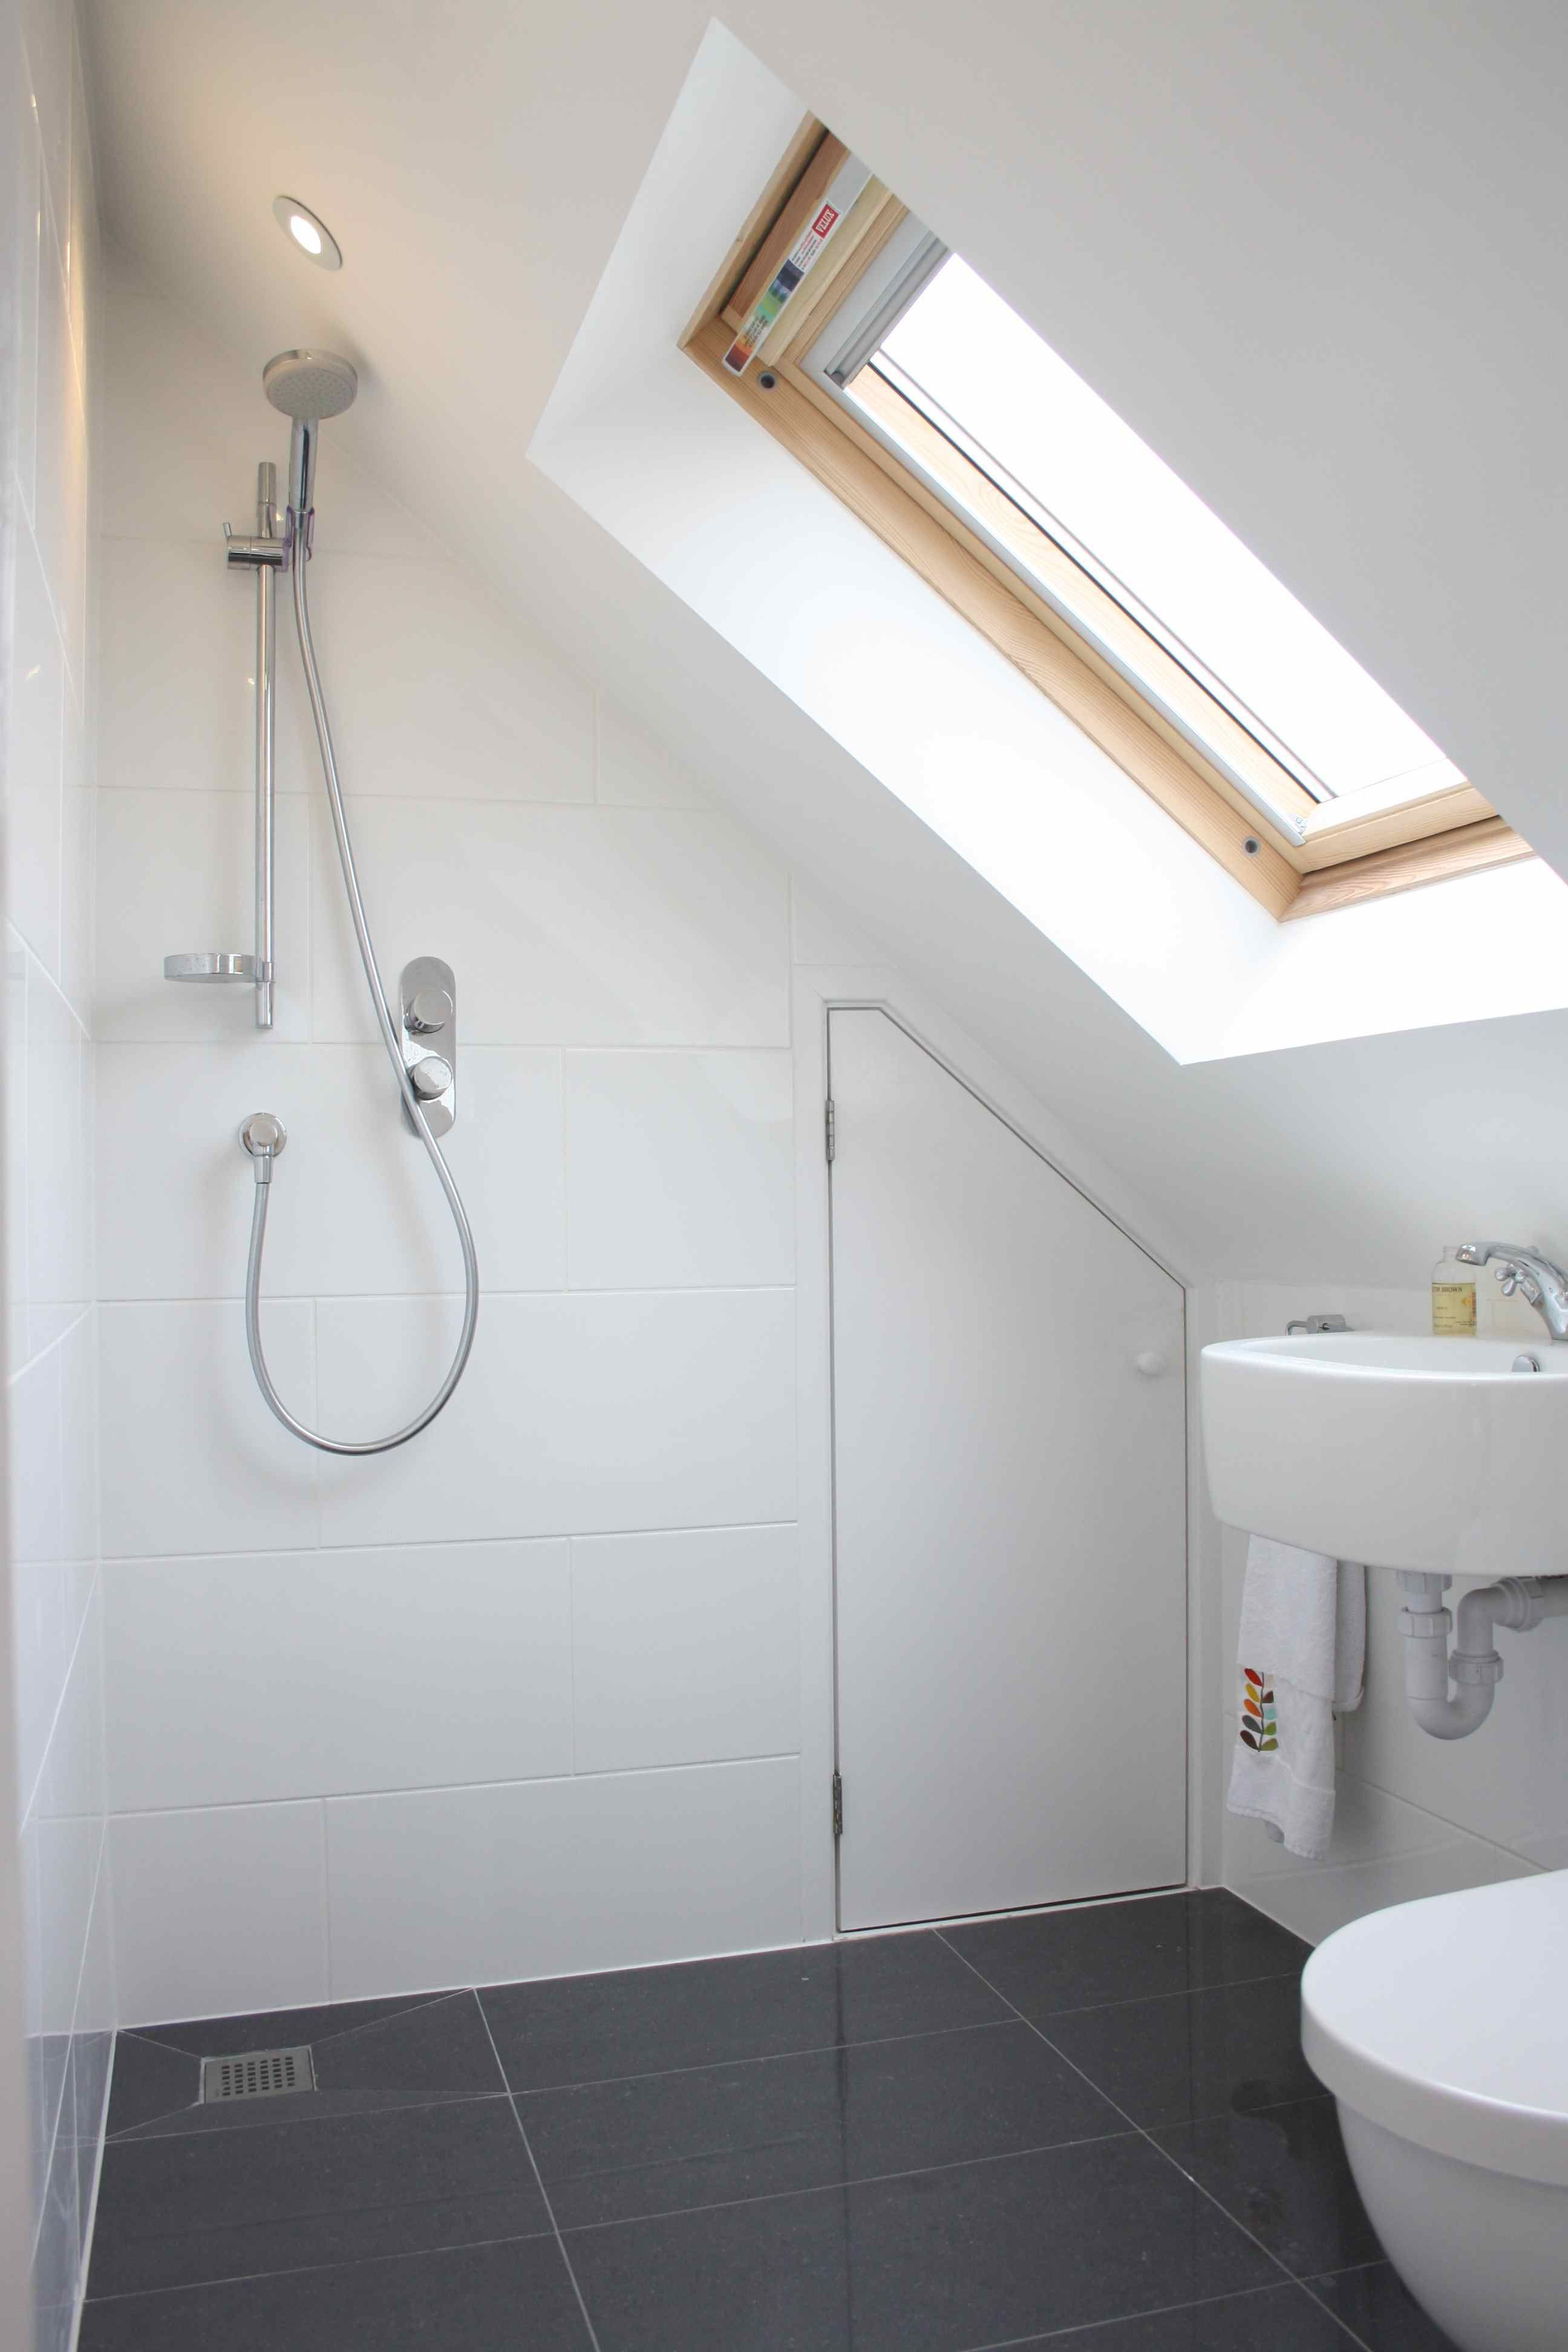 Loft conversion wet room rothesay avenue richmond upon for Bathroom design richmond